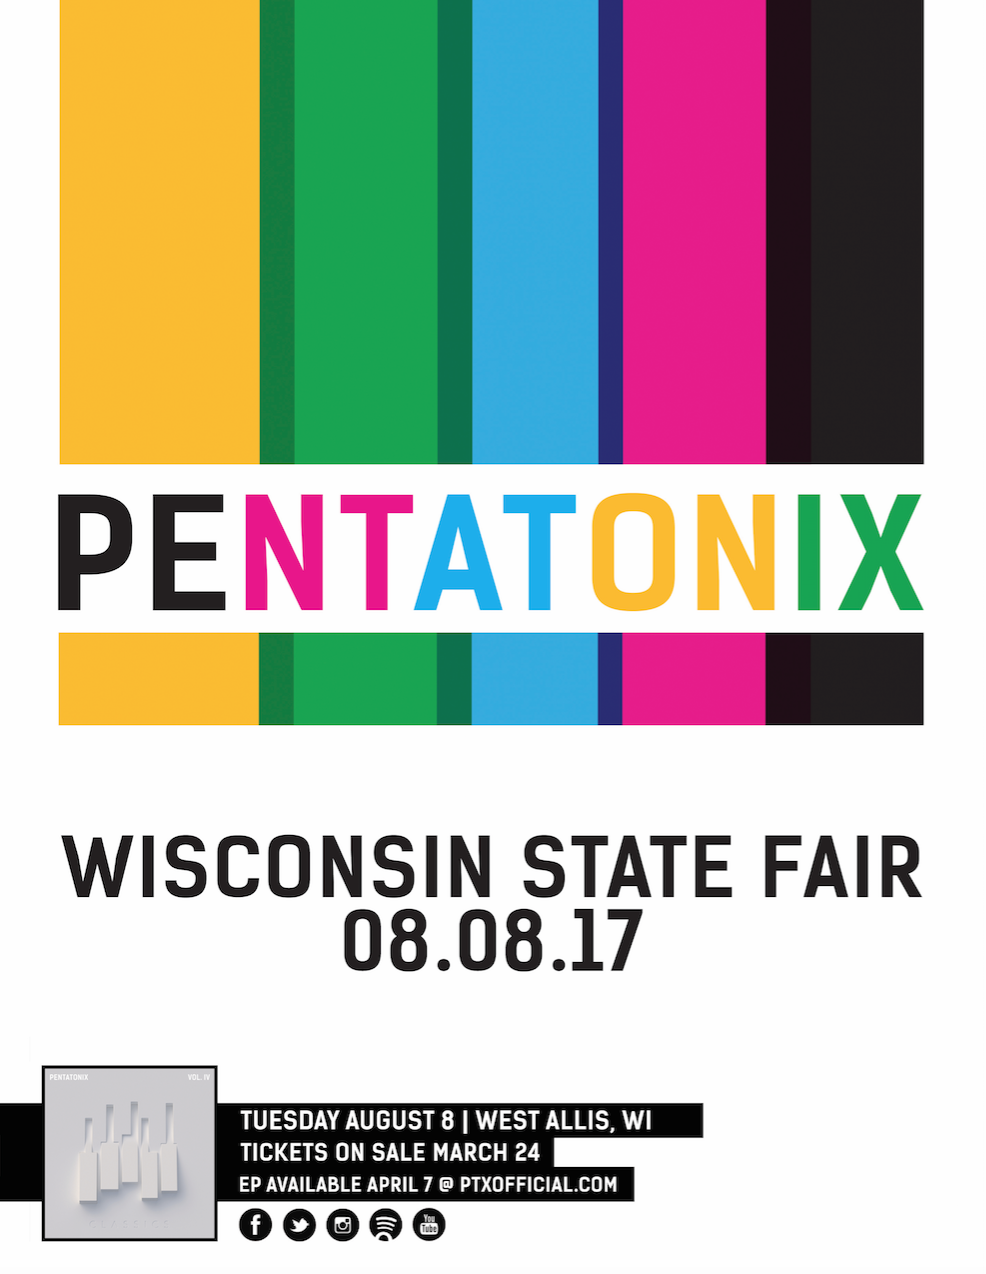 Wisconsin state fair dates in Perth